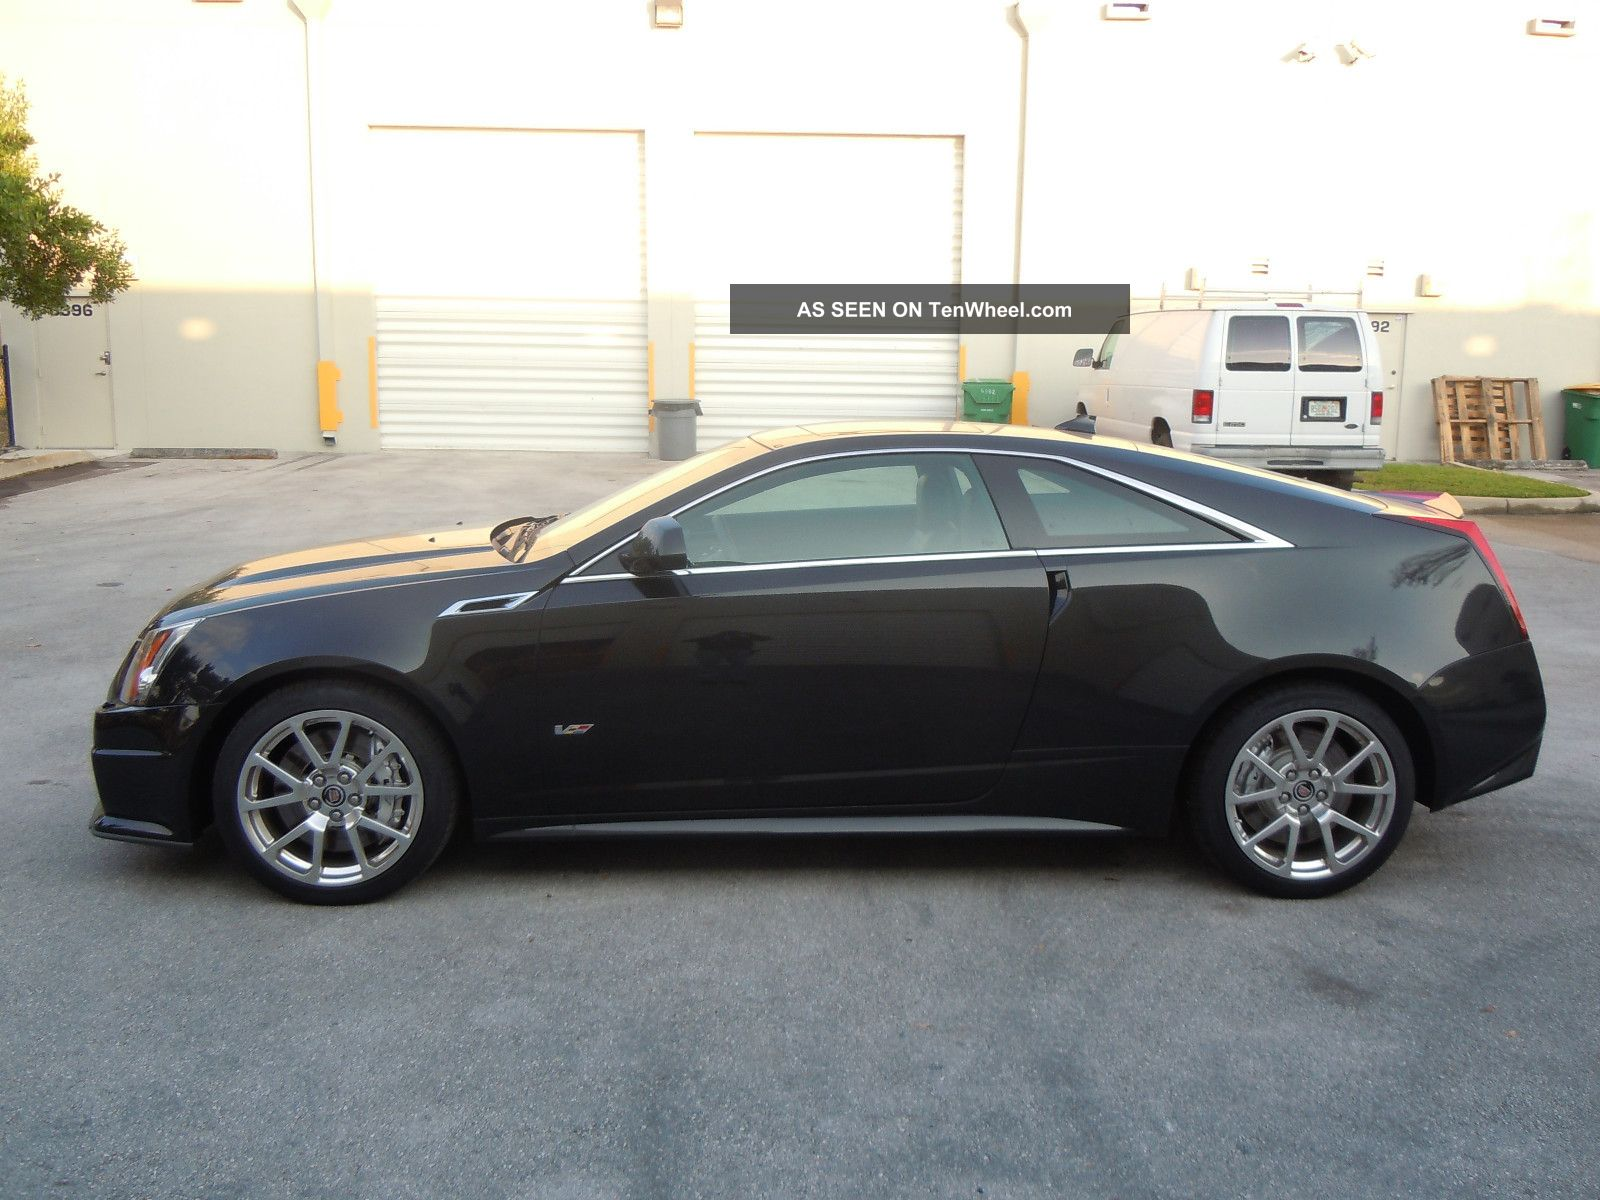 2012 Cadillac Cts V Coupe 6 2l V8 556 Hp Black